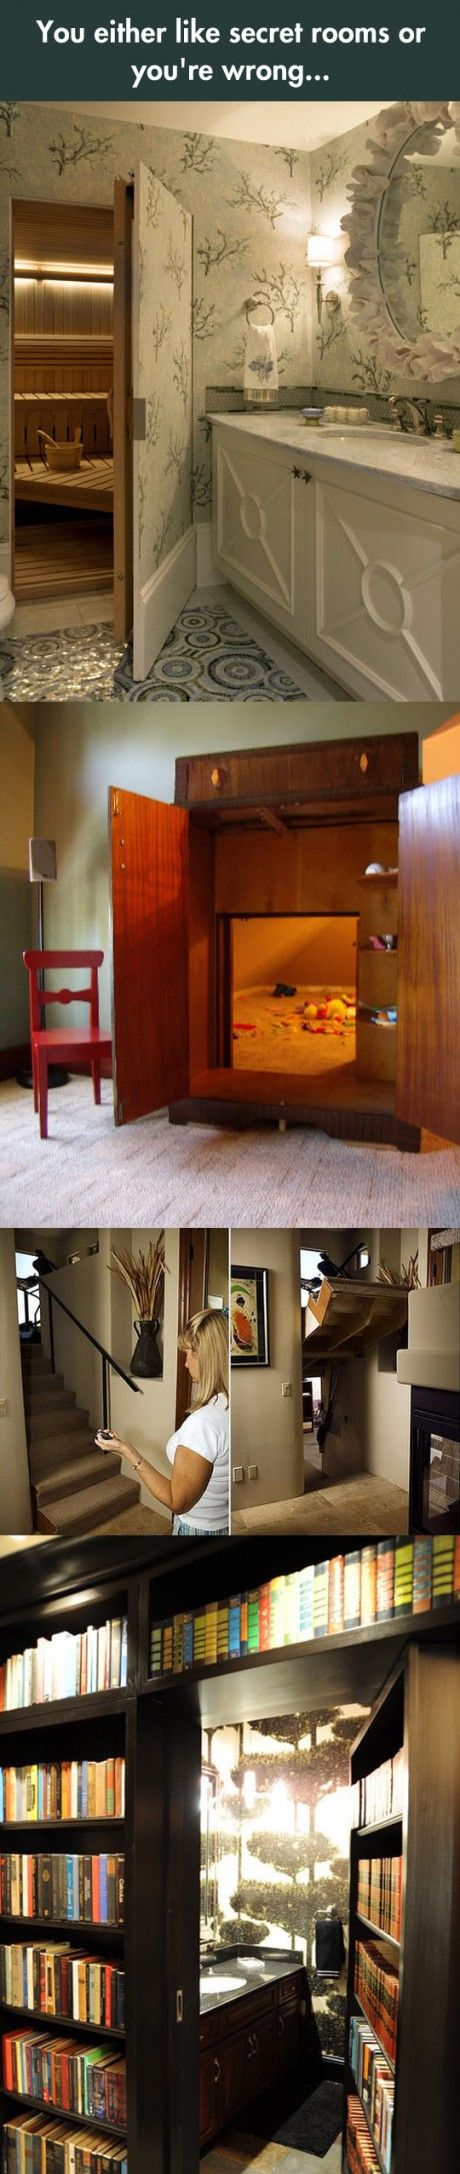 if my house does not have one of these i will be disapointed with my life. Check!